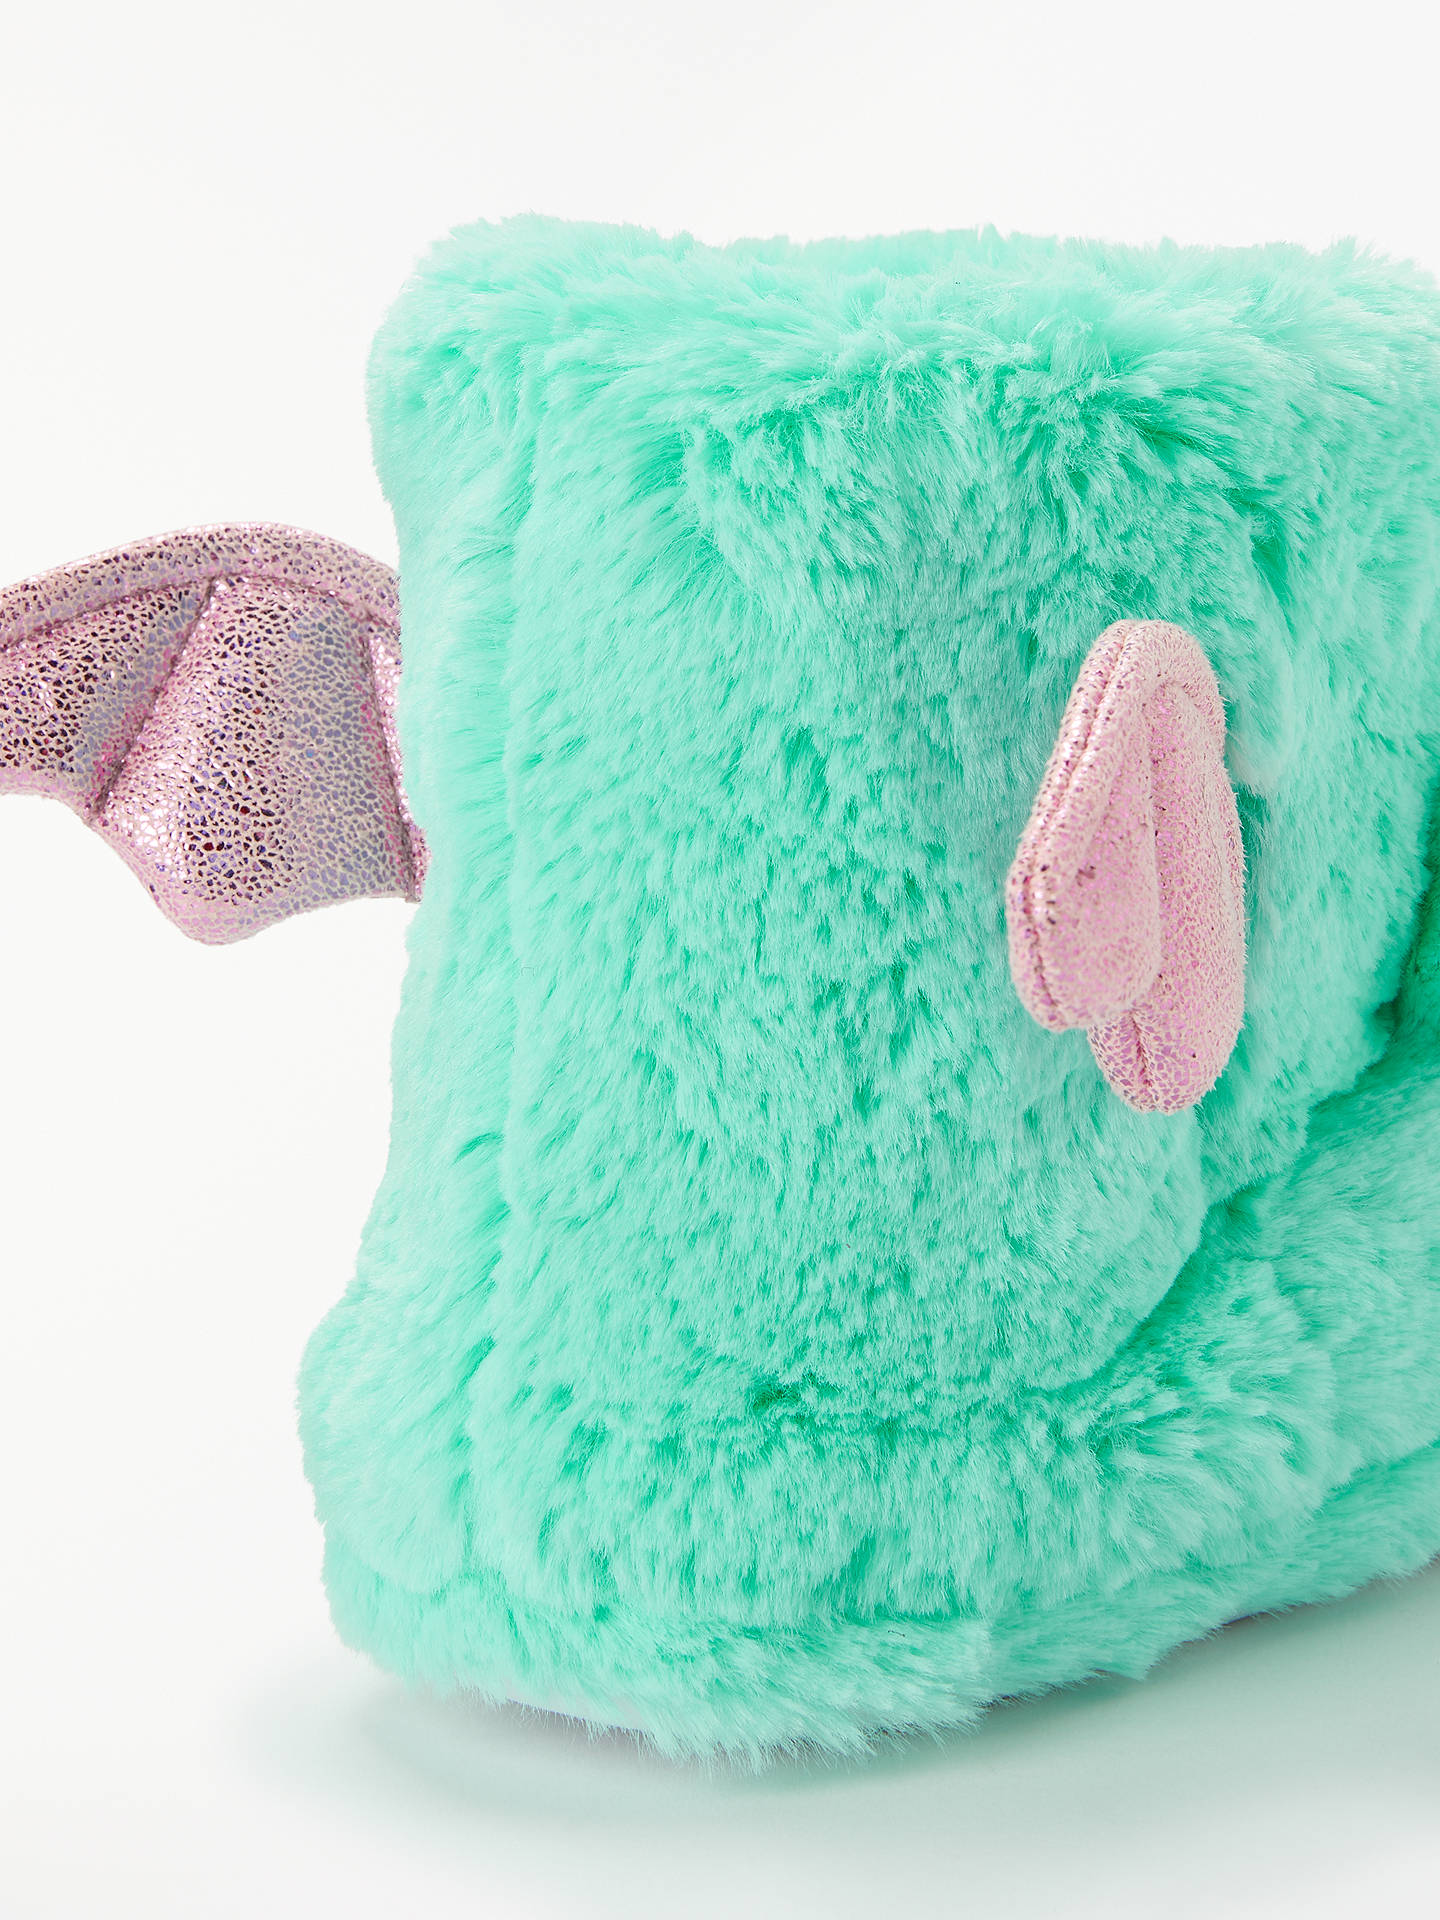 Buy John Lewis & Partners Children's Unicorn Booties Slippers, Turquoise, 10 Jnr Online at johnlewis.com